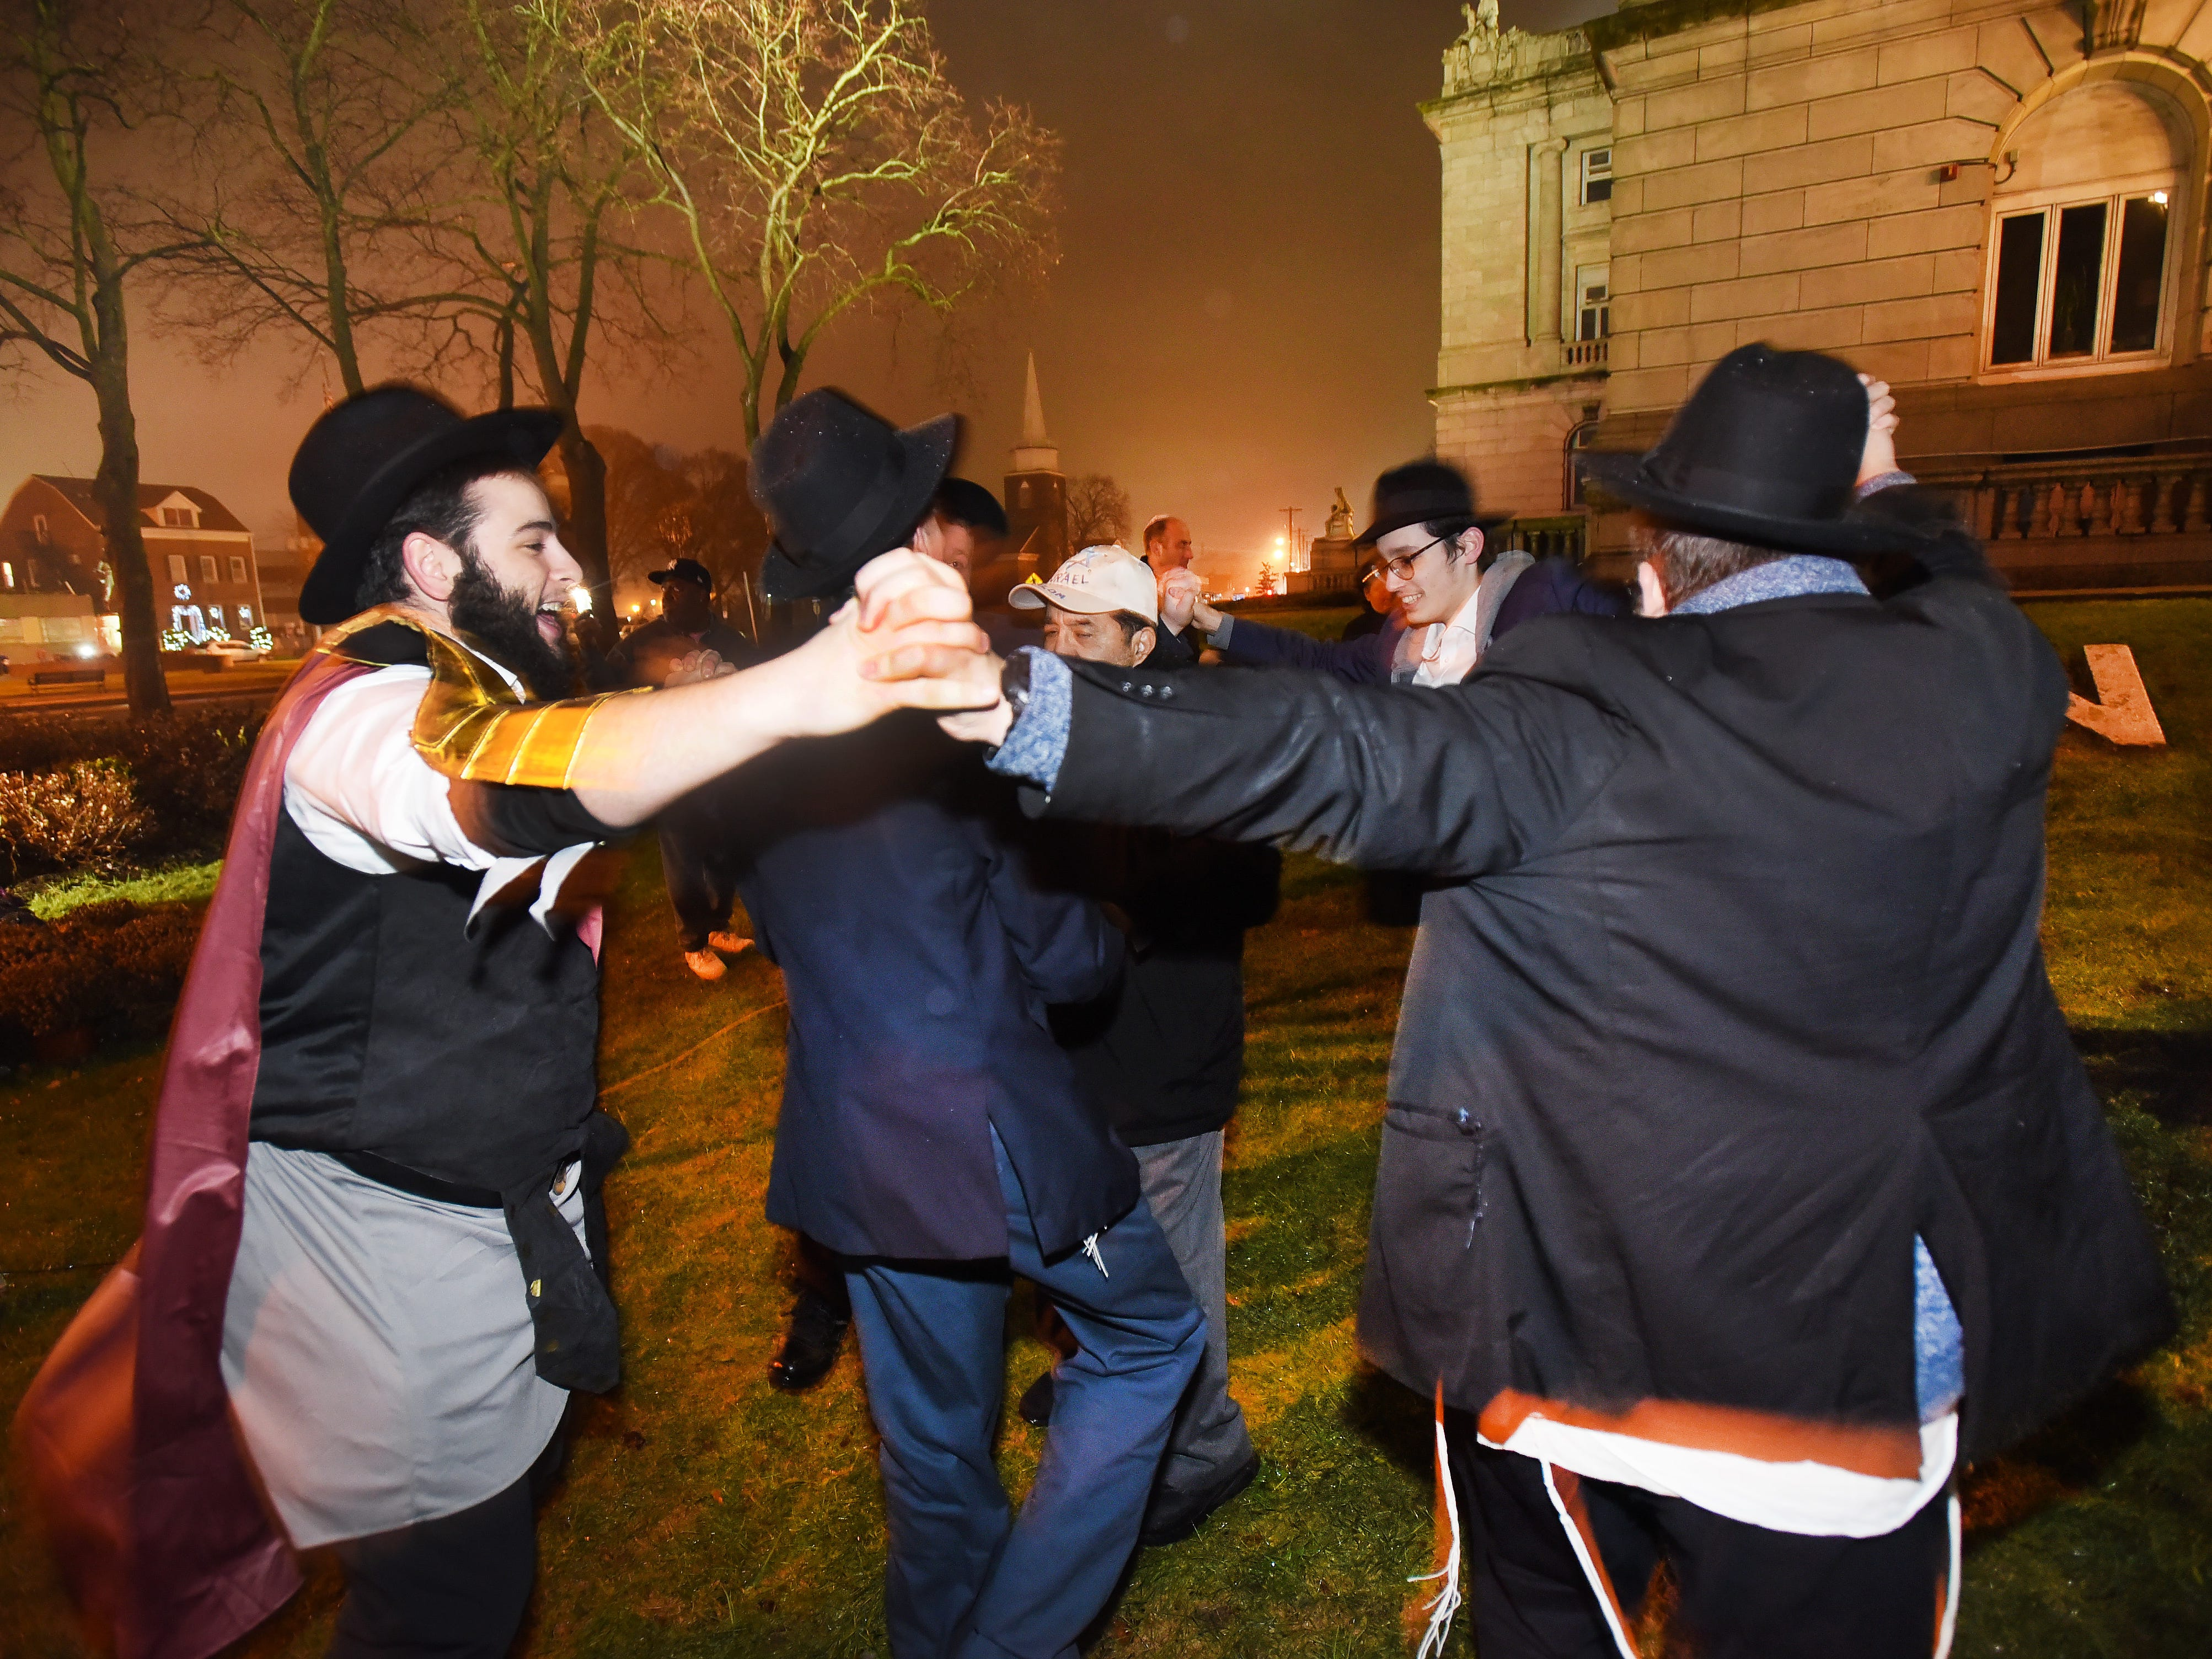 Members from Chabad of Hackensack, dance to celebrate the 2018 Hanukkah season following the lighting ceremony at the front lawn of Bergen County Courthouse in Hackensack on 12/02/18.